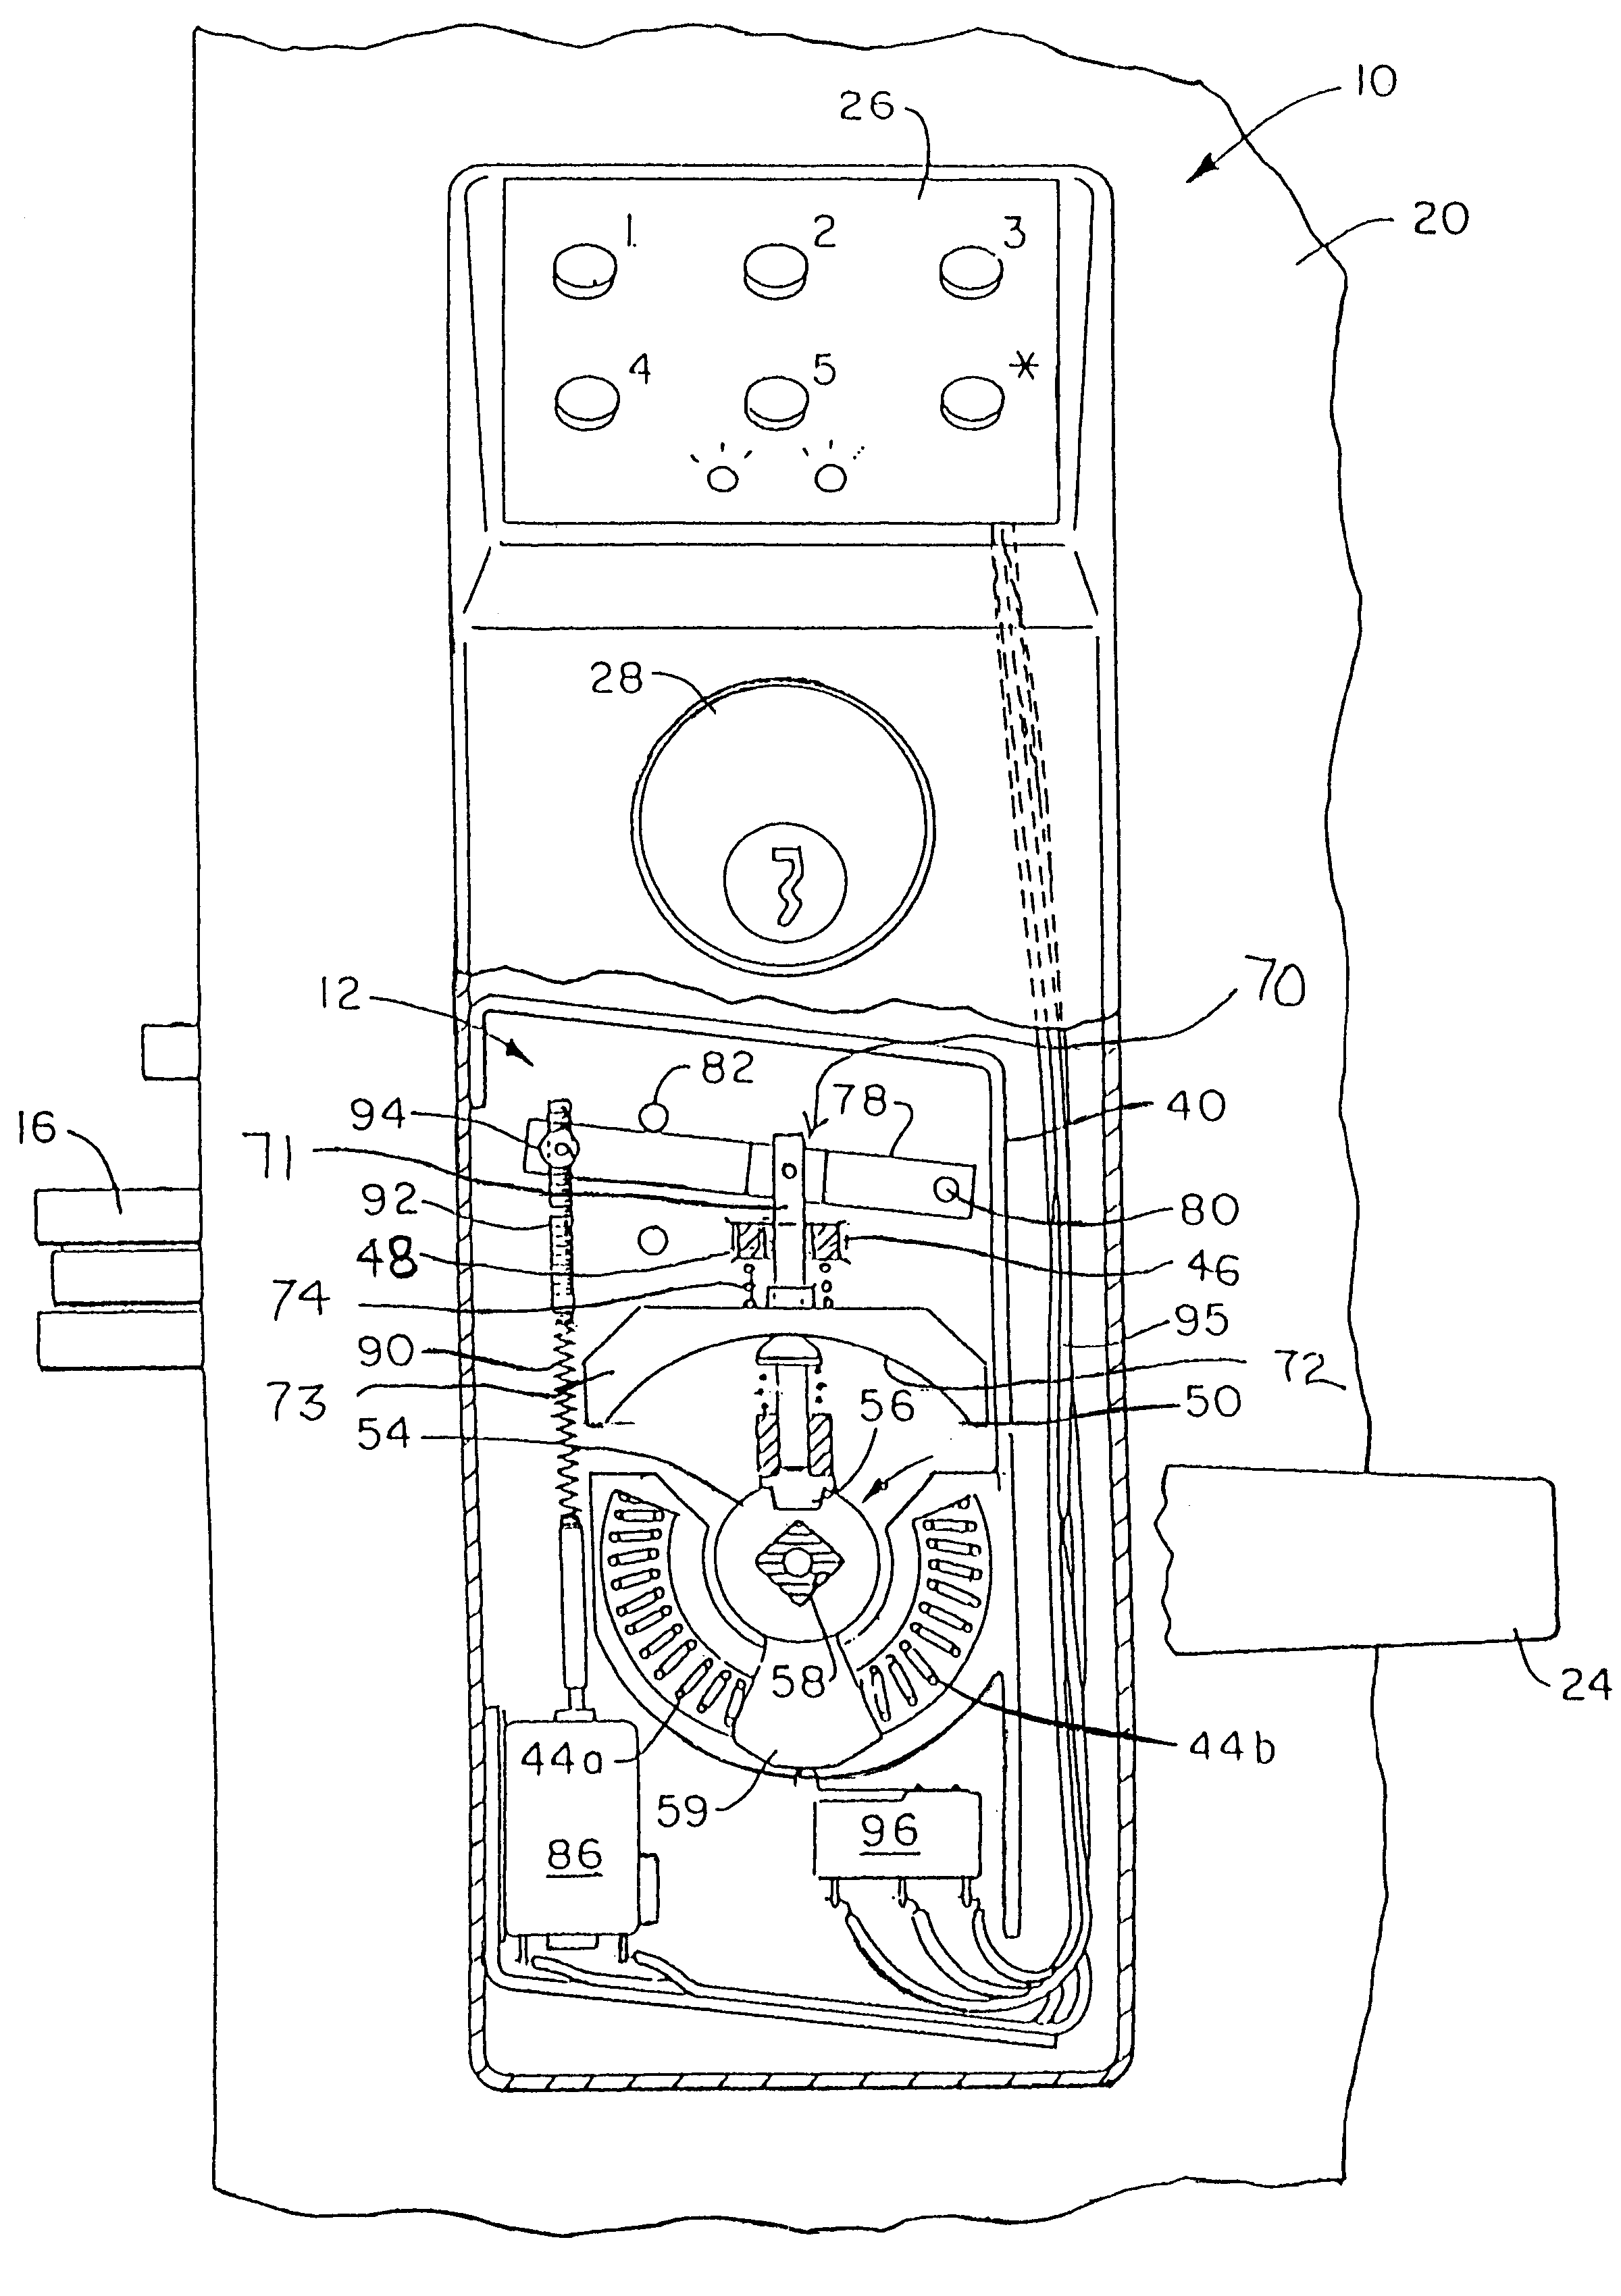 Onity ht24 template 57 images mortise lock diagram quotes onity ht24 template patent us6286347 clutch mechanism with moveable injector pronofoot35fo Image collections